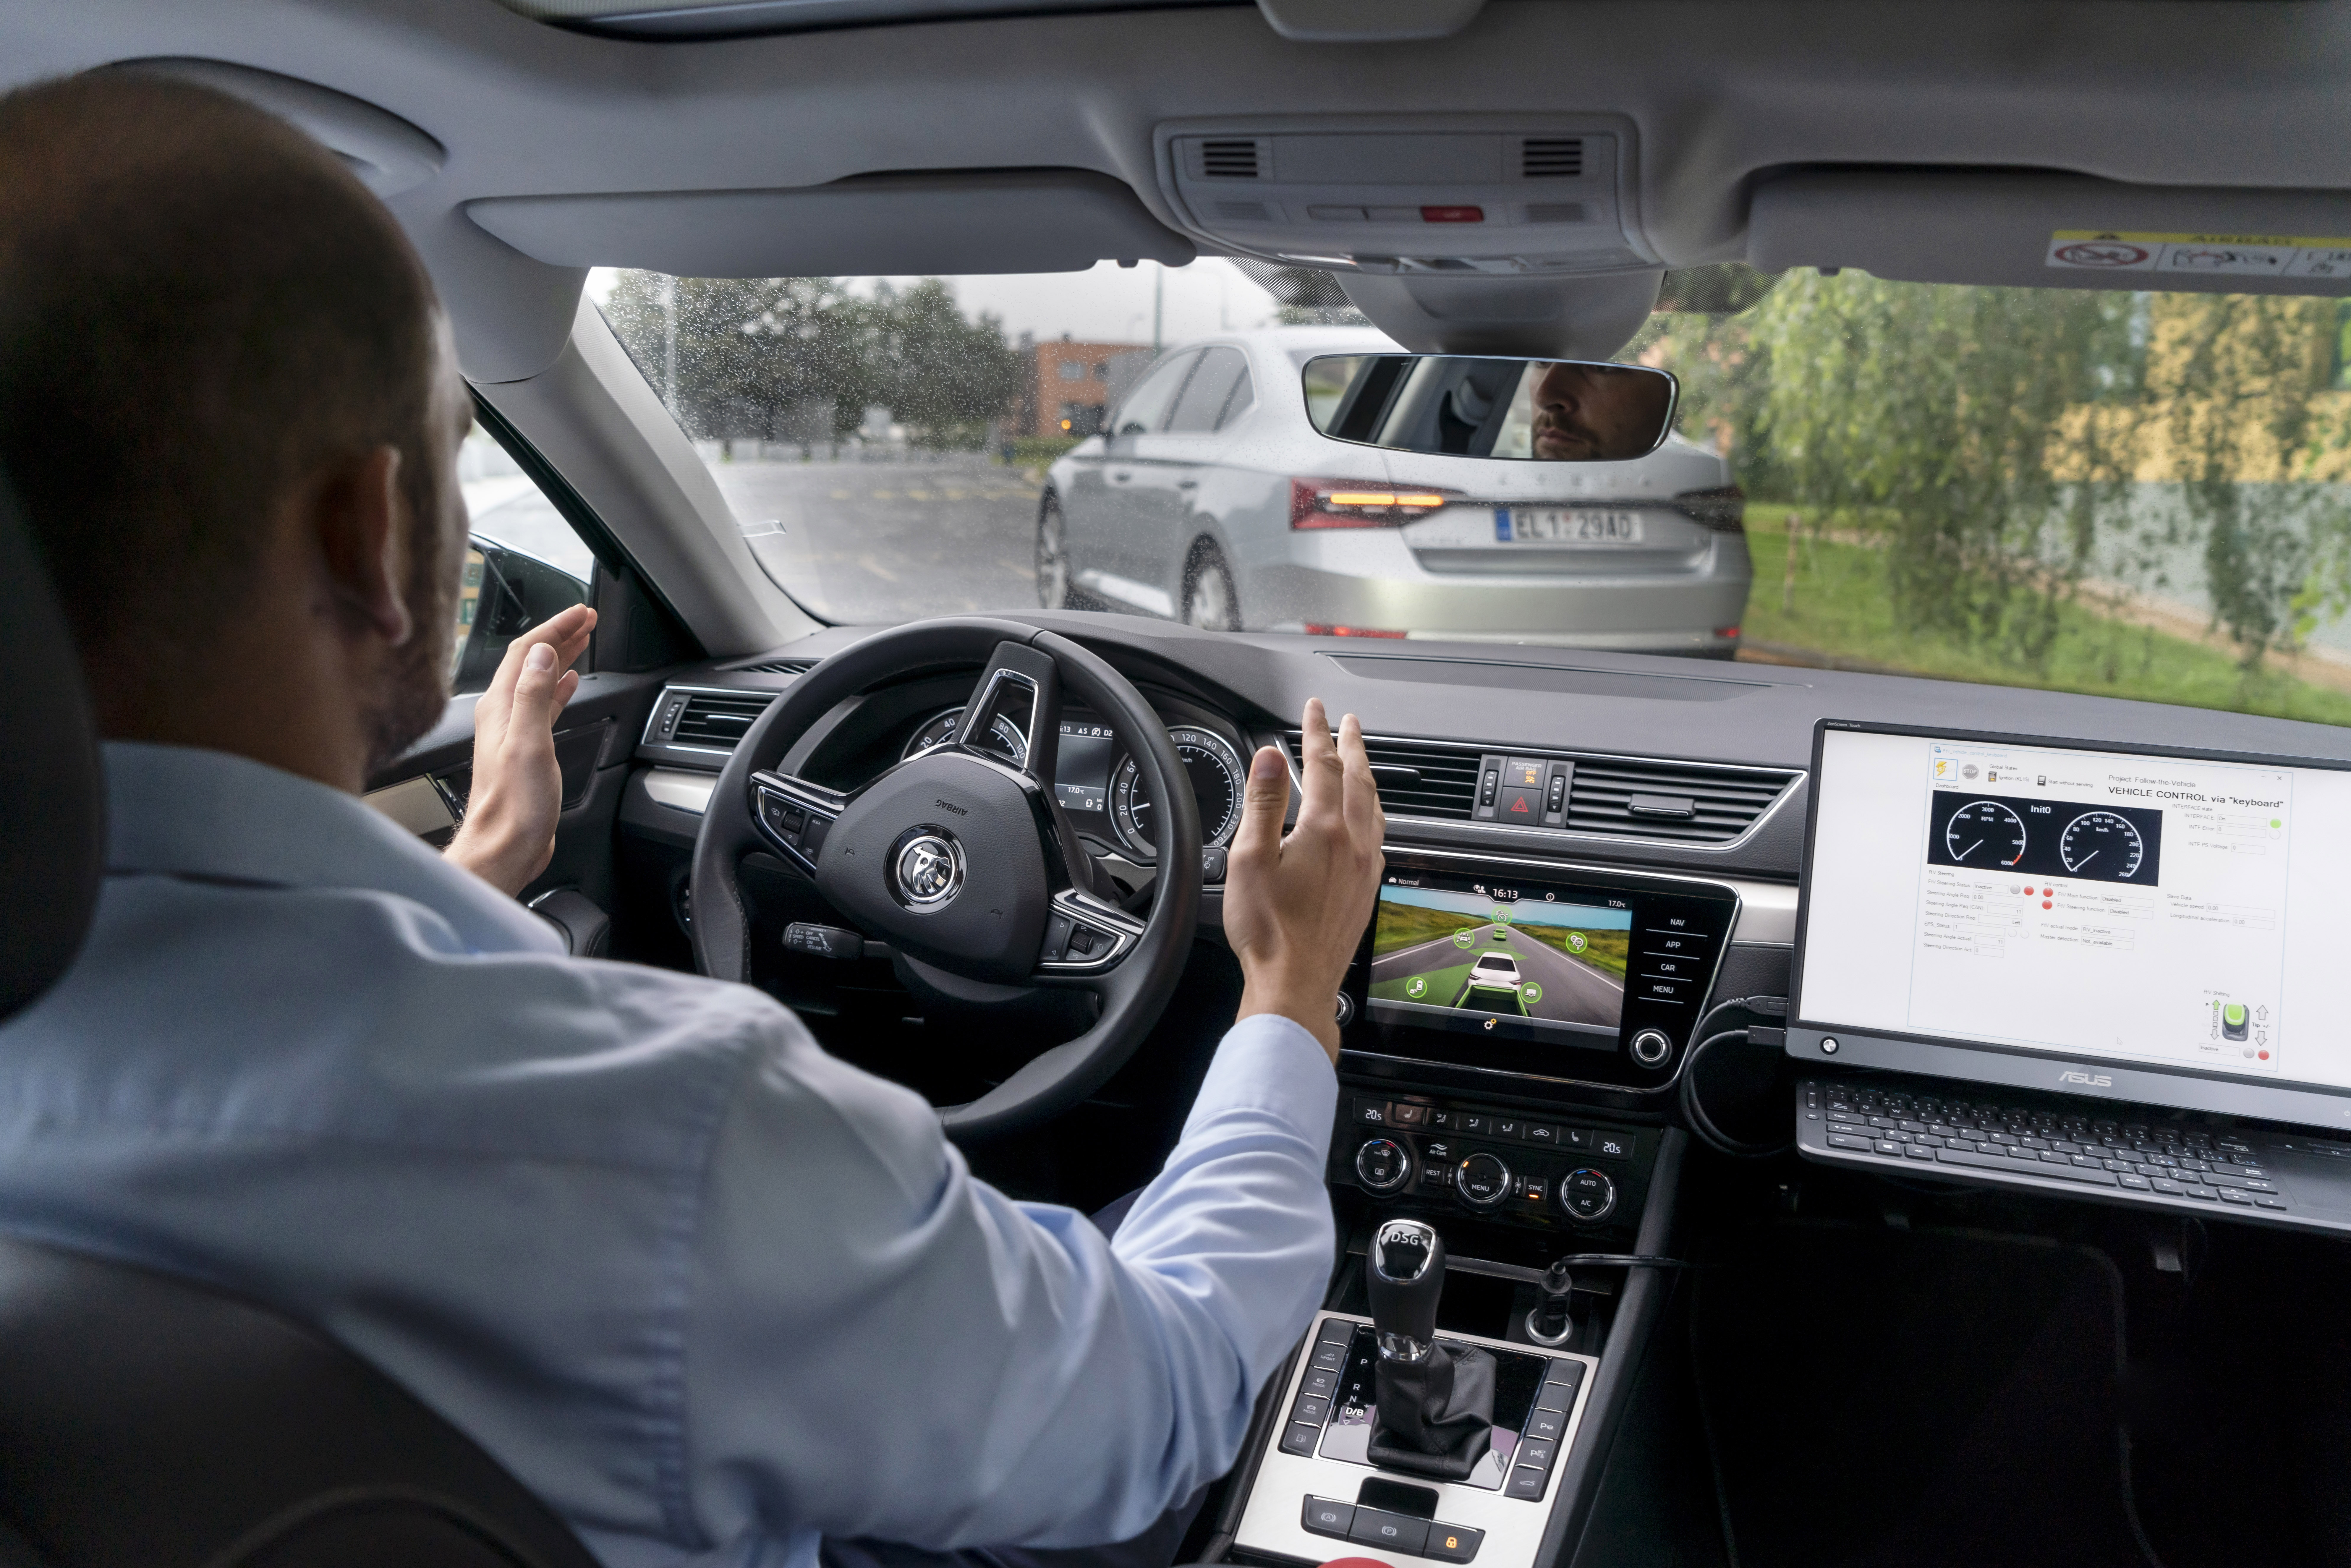 'Follow the Vehicle': SKODA AUTO and the VSB - Technical University of Ostrava collaborate on automated car convoy project - Image 1